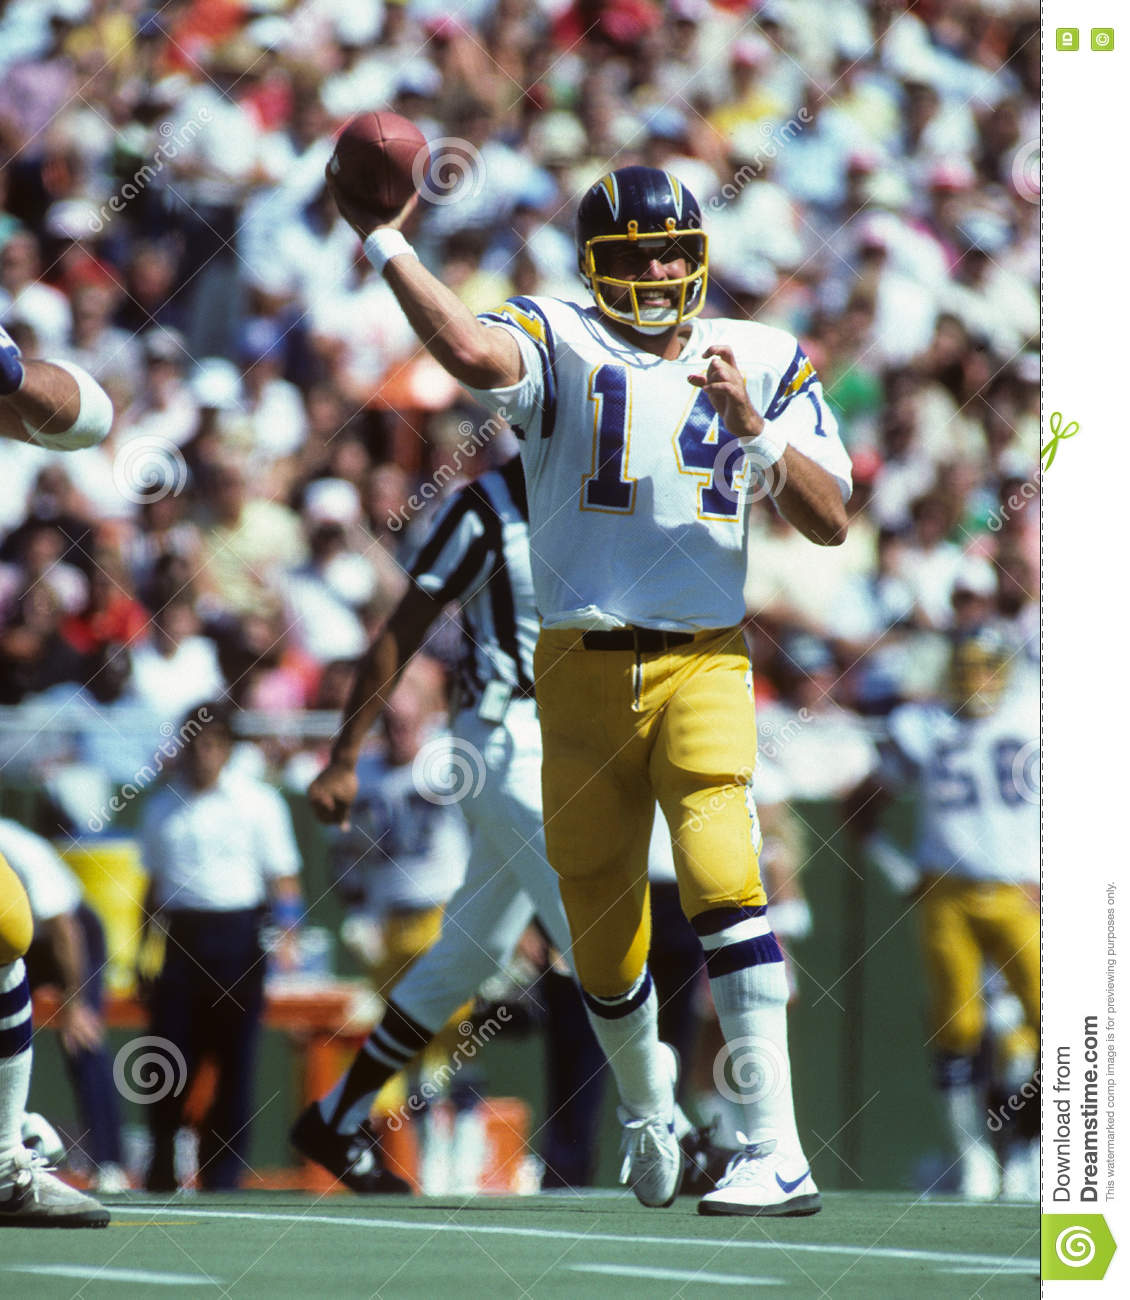 San Diego Chargers Dan Fouts: Dan Fouts San Diego Chargers Immagine Stock Editoriale